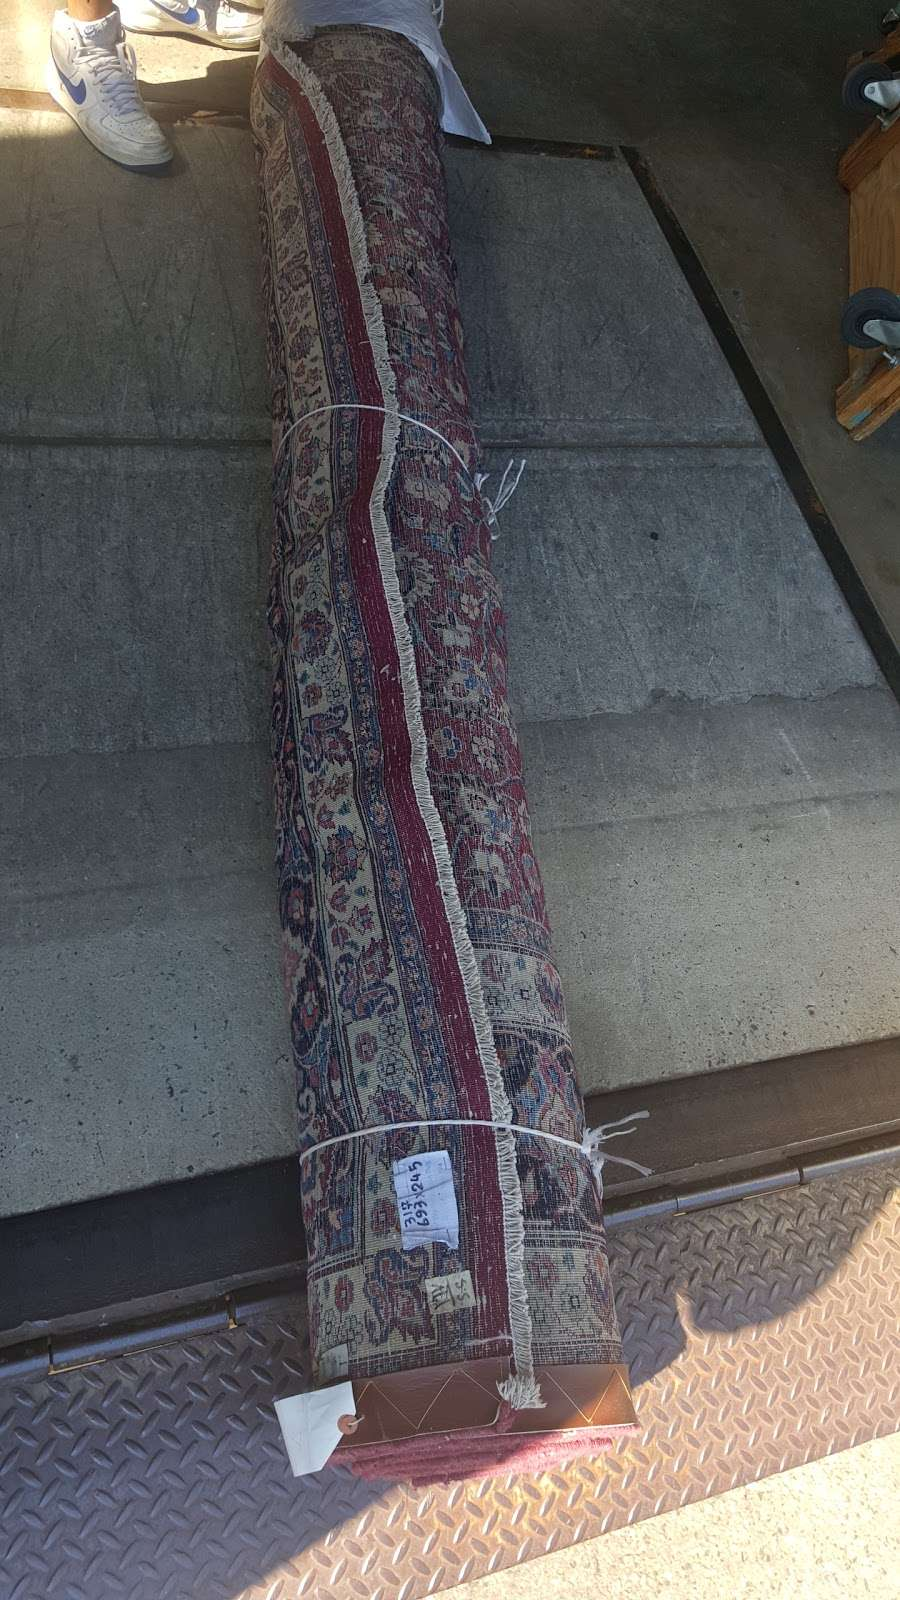 Sns Oriental Rugs - home goods store    Photo 1 of 2   Address: 455 Barell Ave, Carlstadt, NJ 07072, USA   Phone: (201) 355-8737